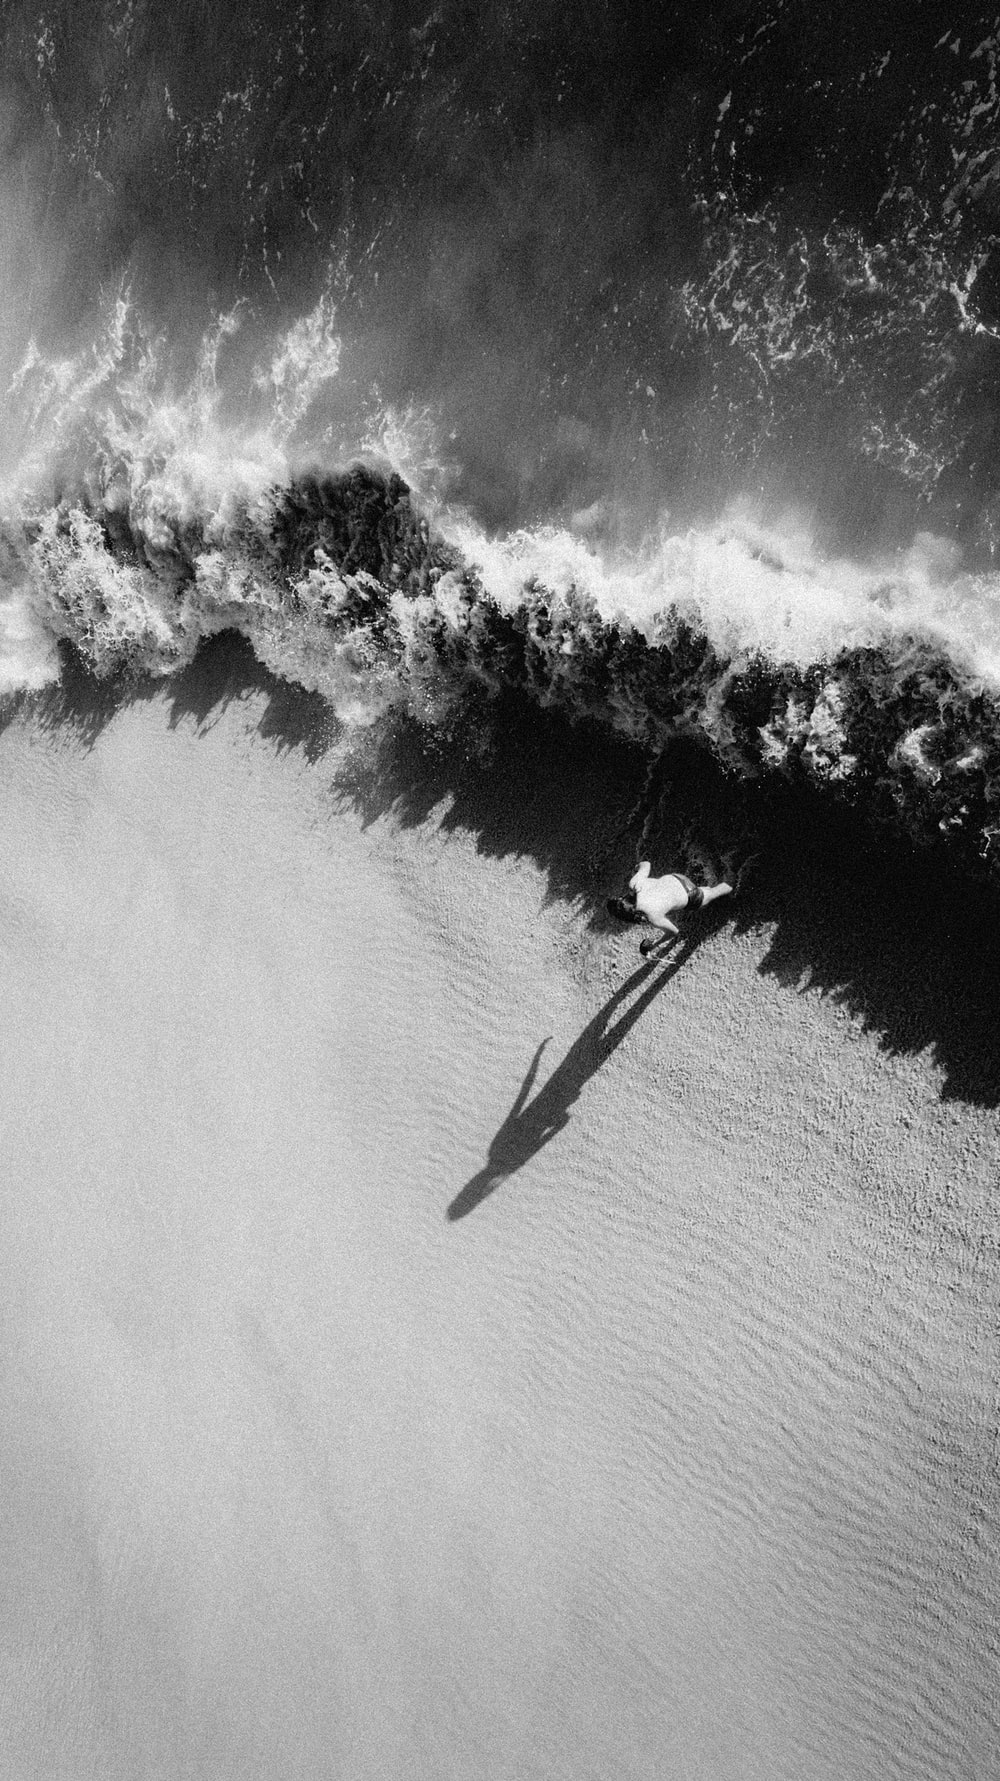 grayscale photo of man in black jacket and pants standing on surfboard